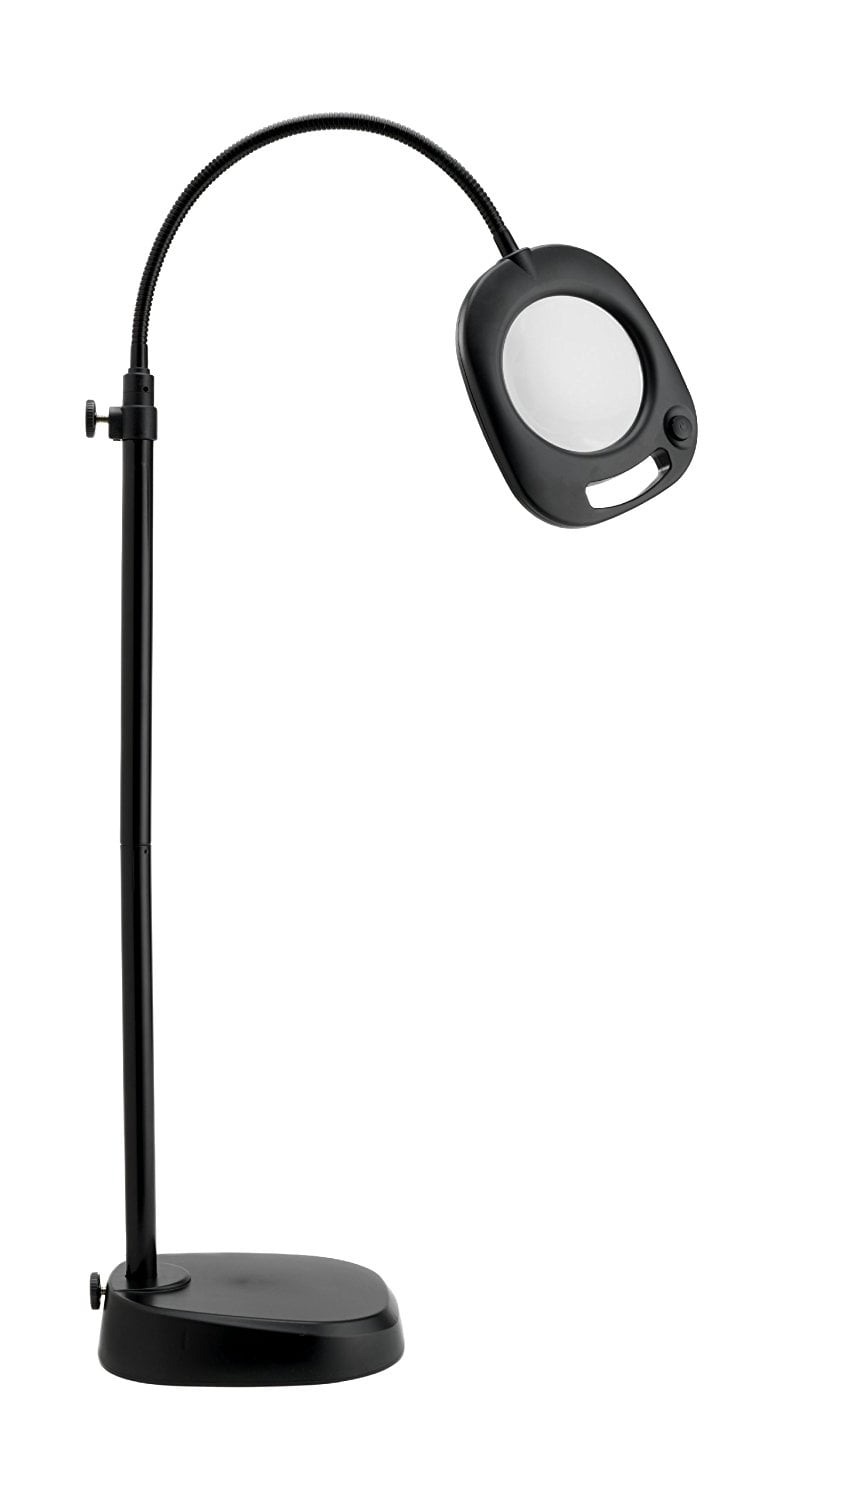 Naturalight 5 inch led floor or table mag light by for Naturalight led floor lamp with magnifier